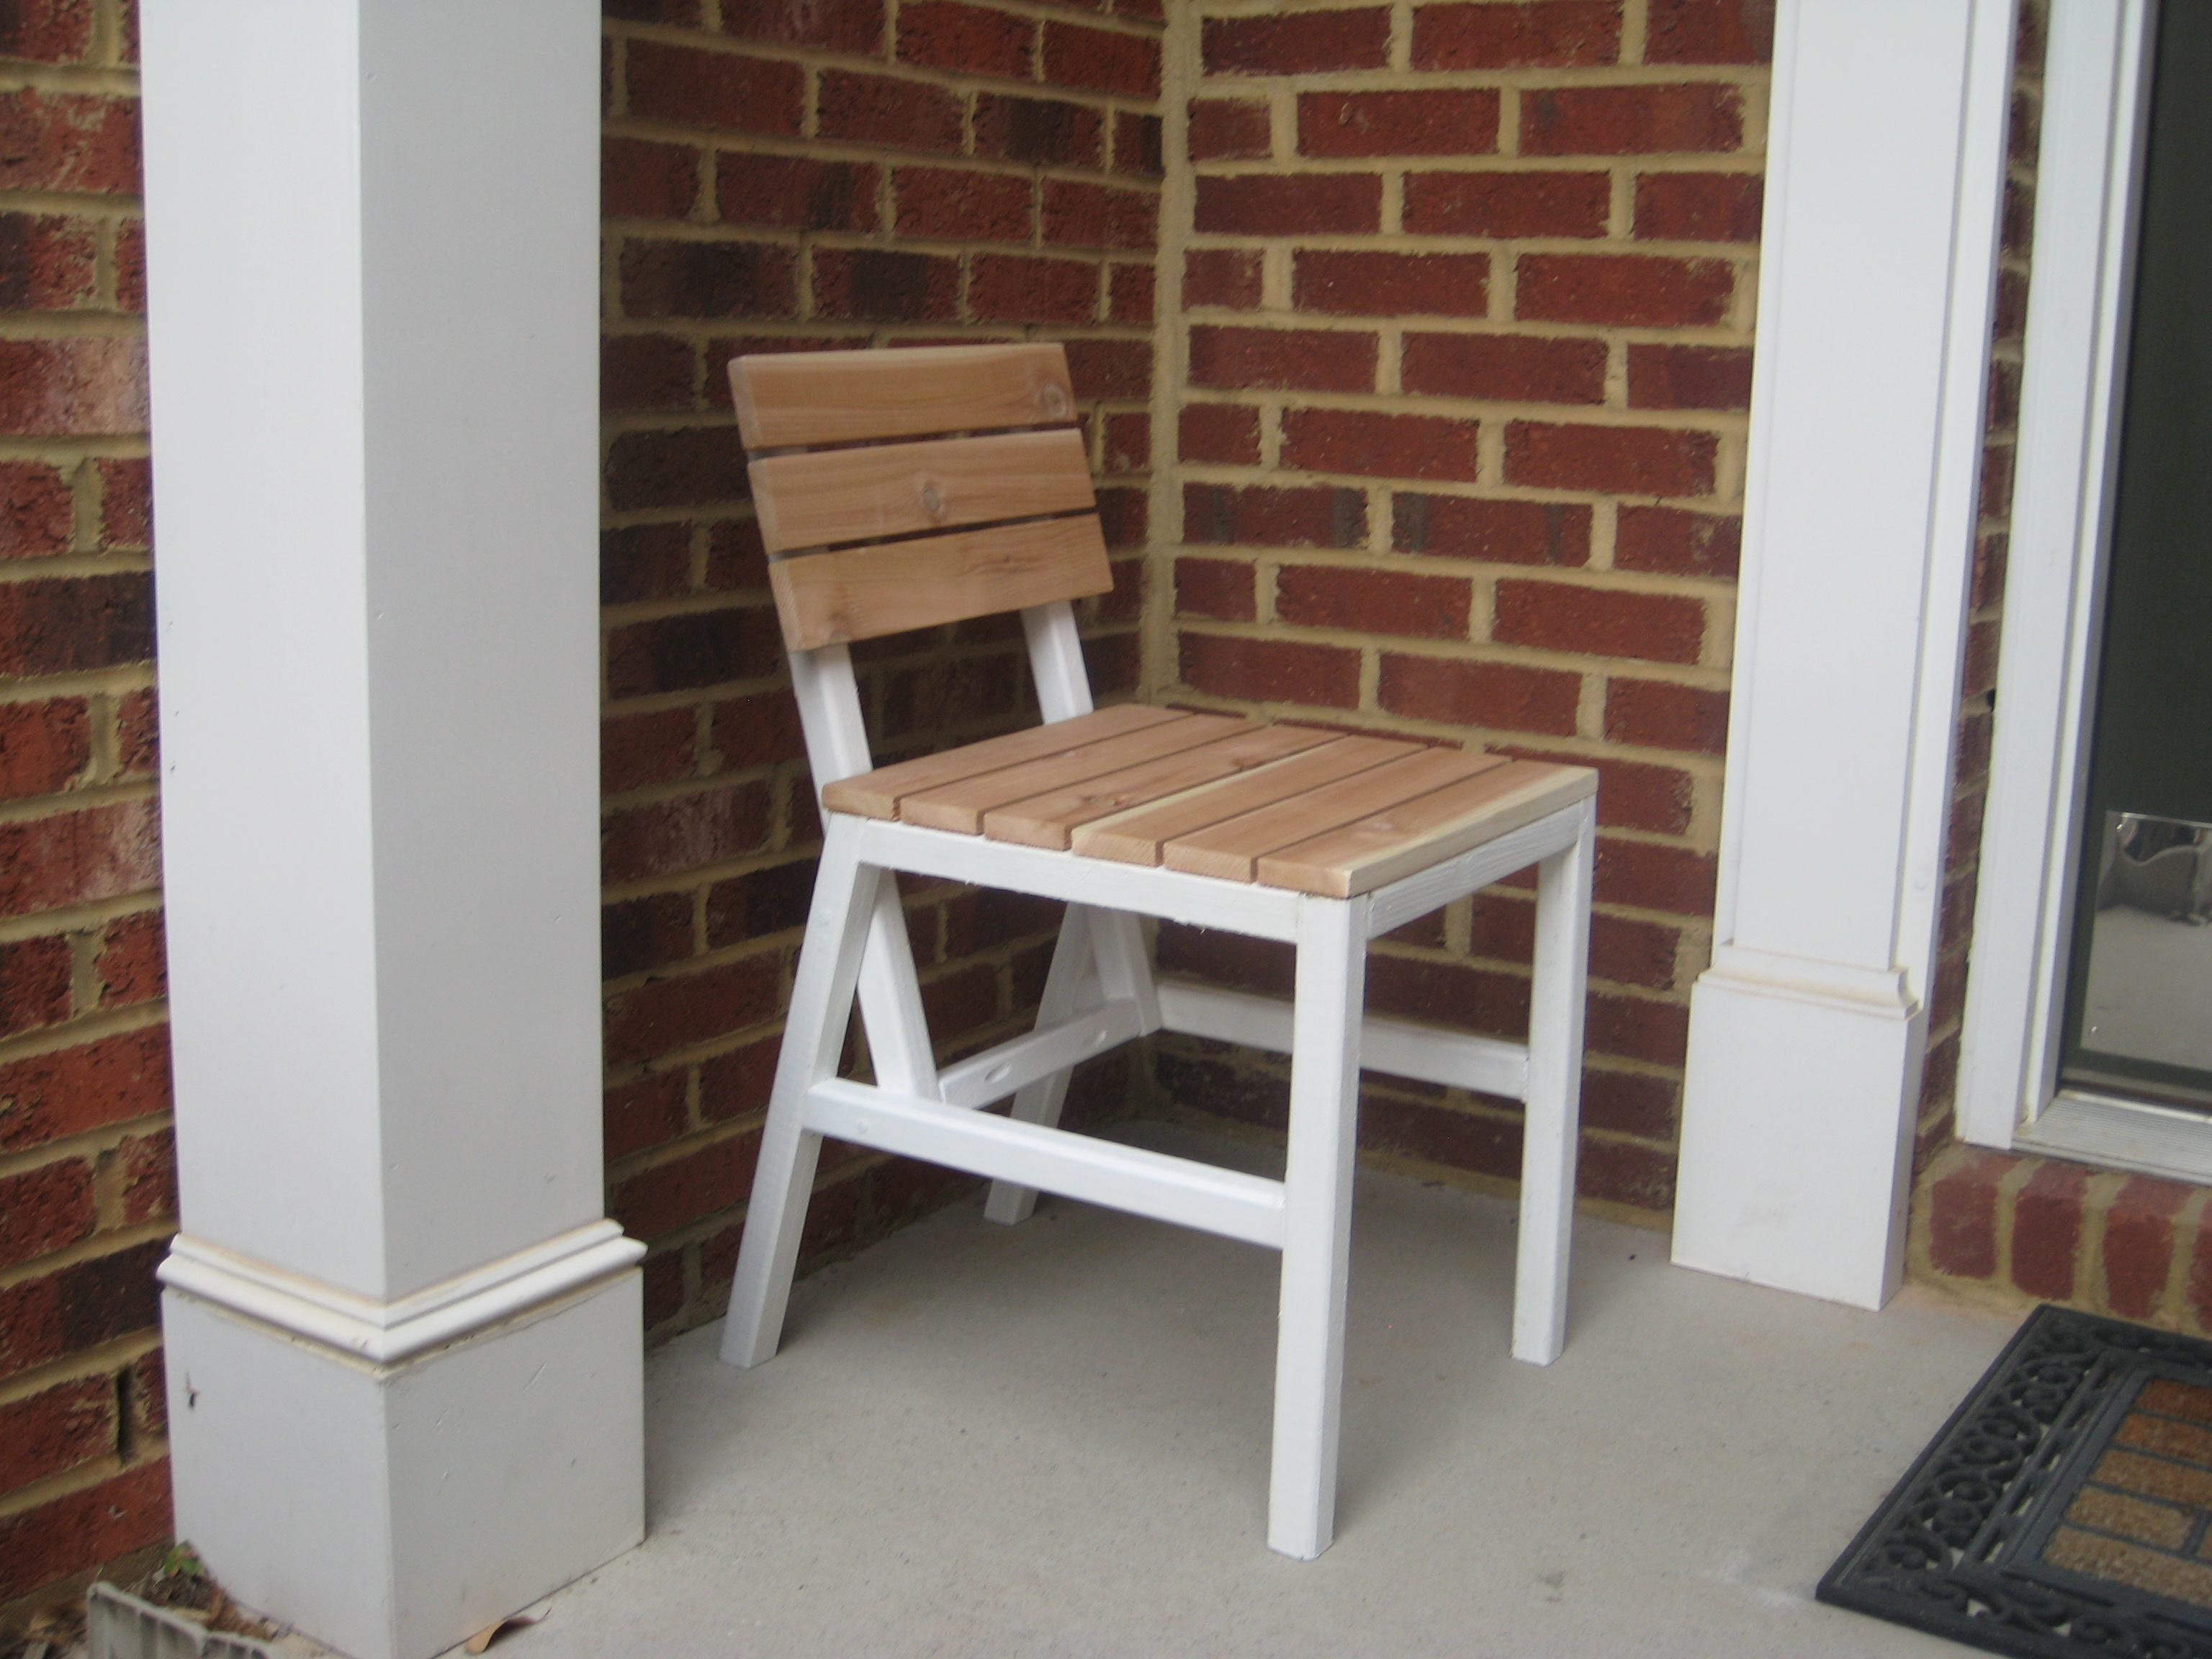 Ana White Harriet Outdoor Dining Chair With Cedar Slats